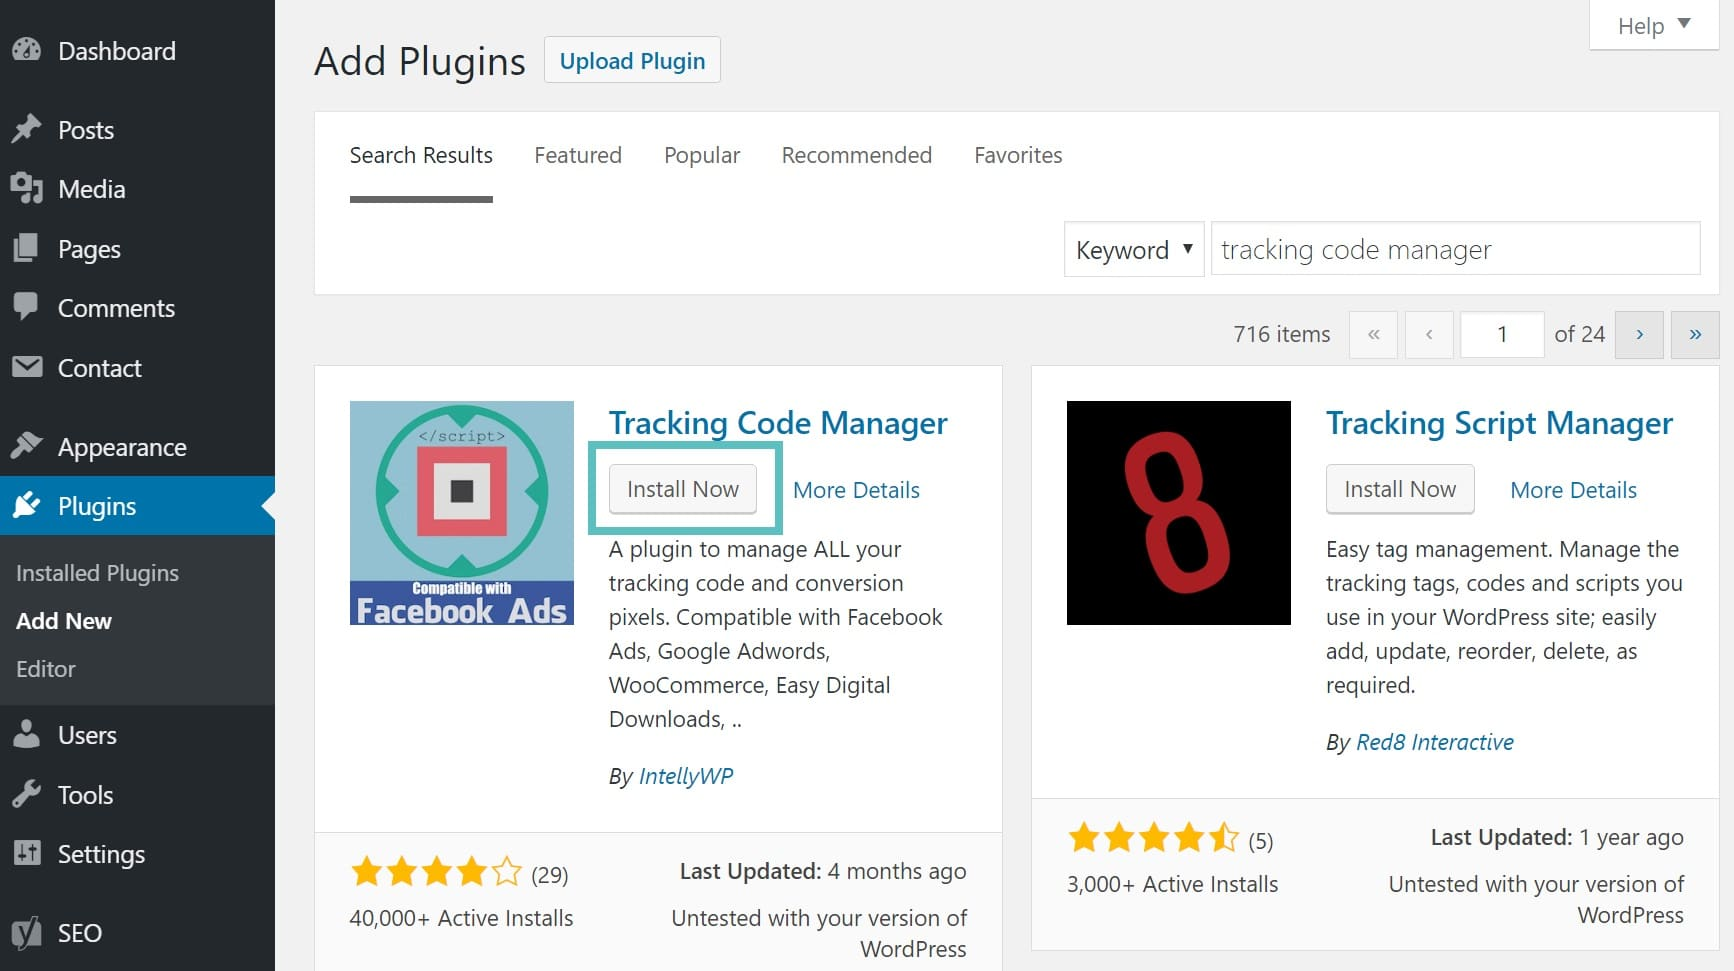 Installer le plugin Tracking Code Manager sur WordPress